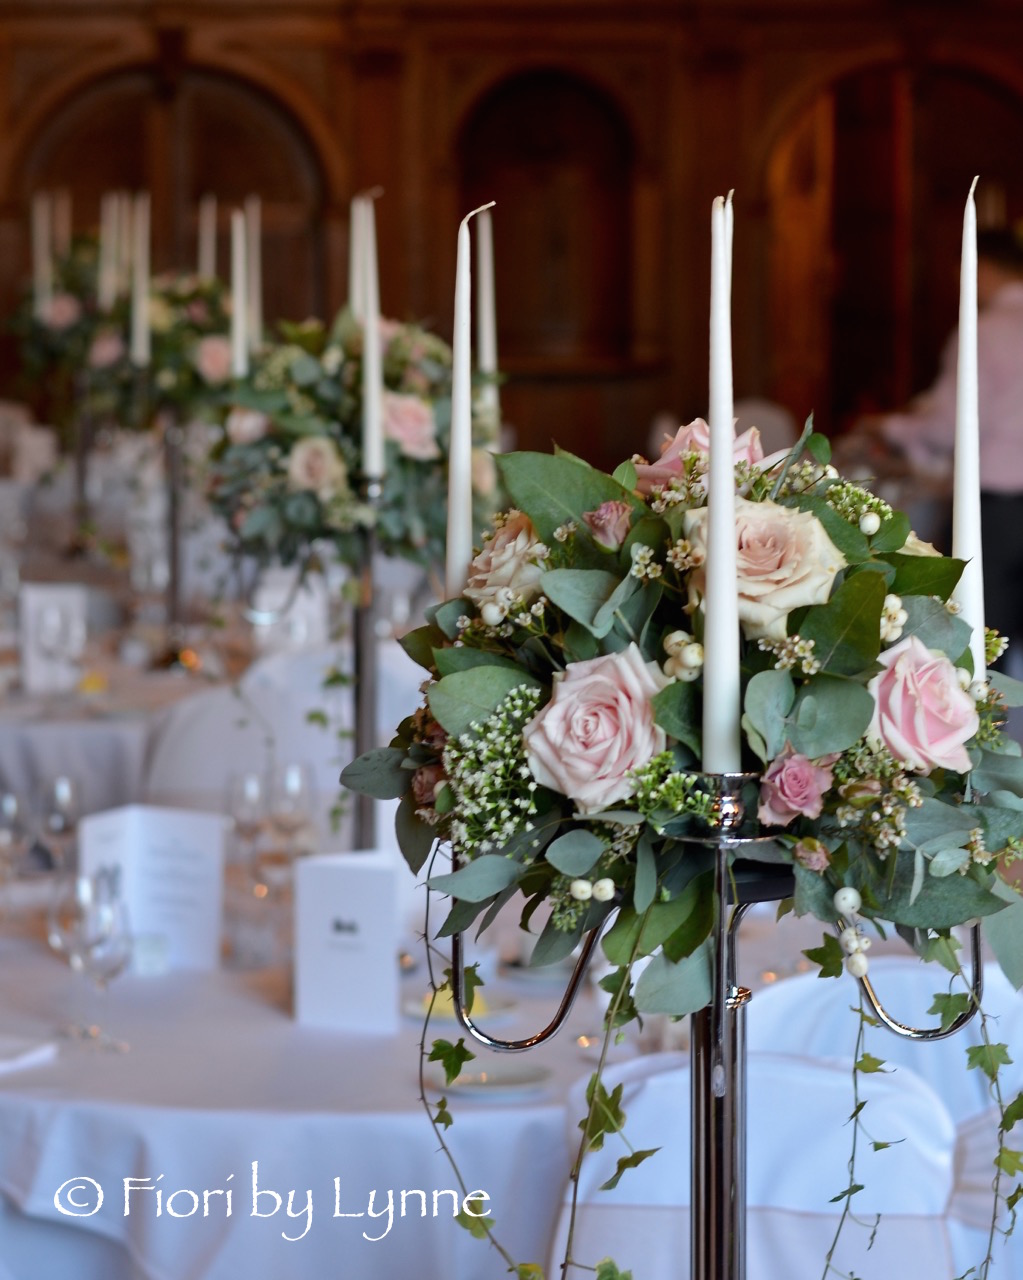 rhinefieldhouse-candelabra-wedding-flowers-natural-coffee-blush.jpg